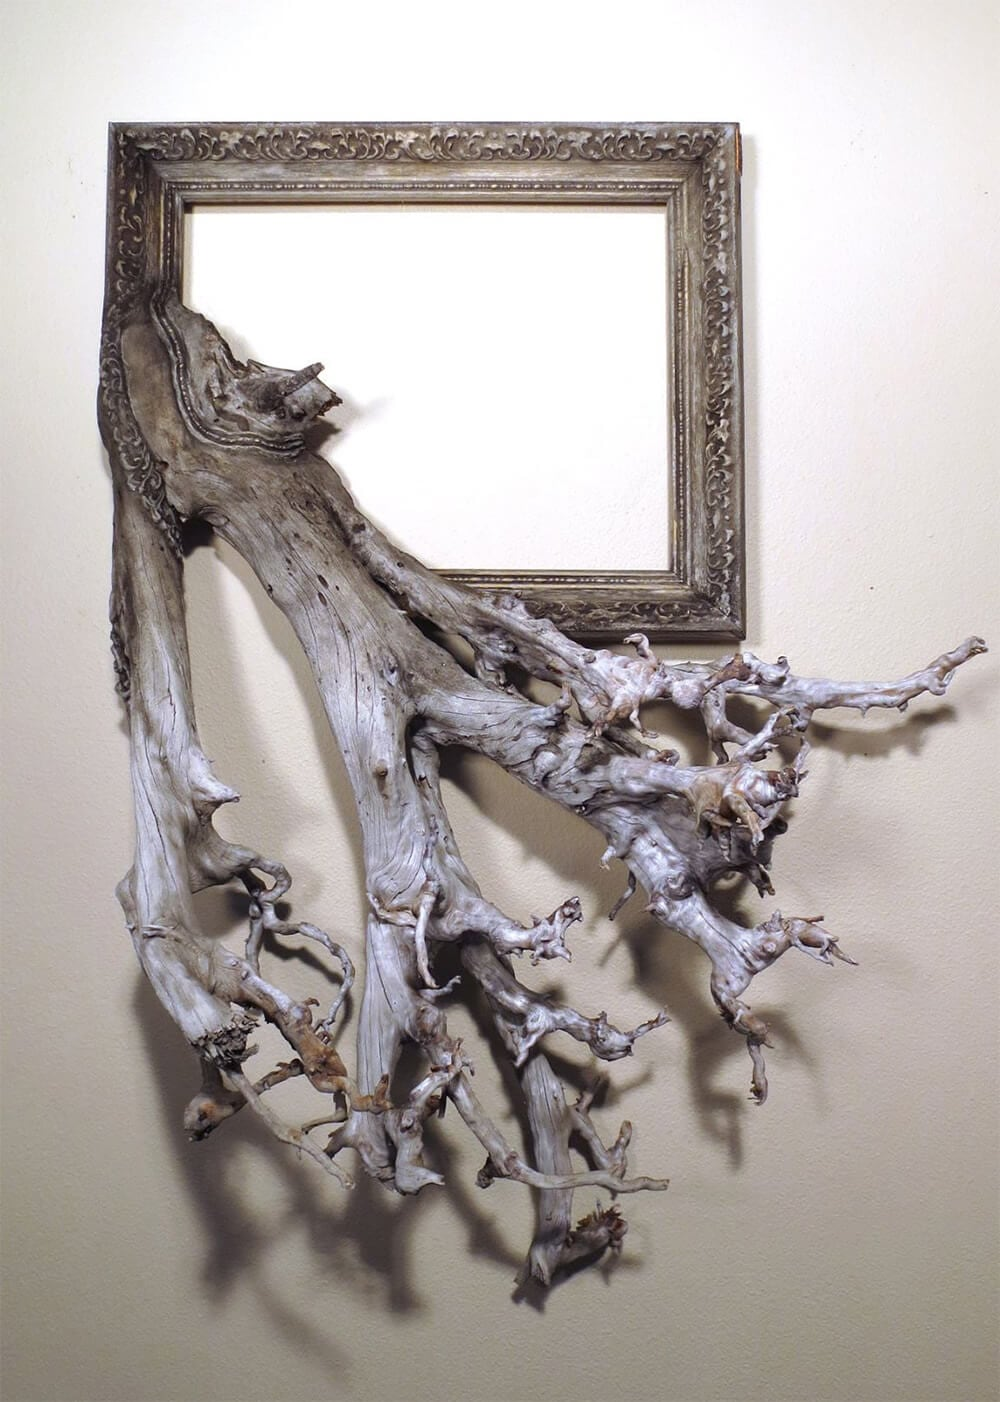 tree-branch-frames-darryl-cox-freeyork-10